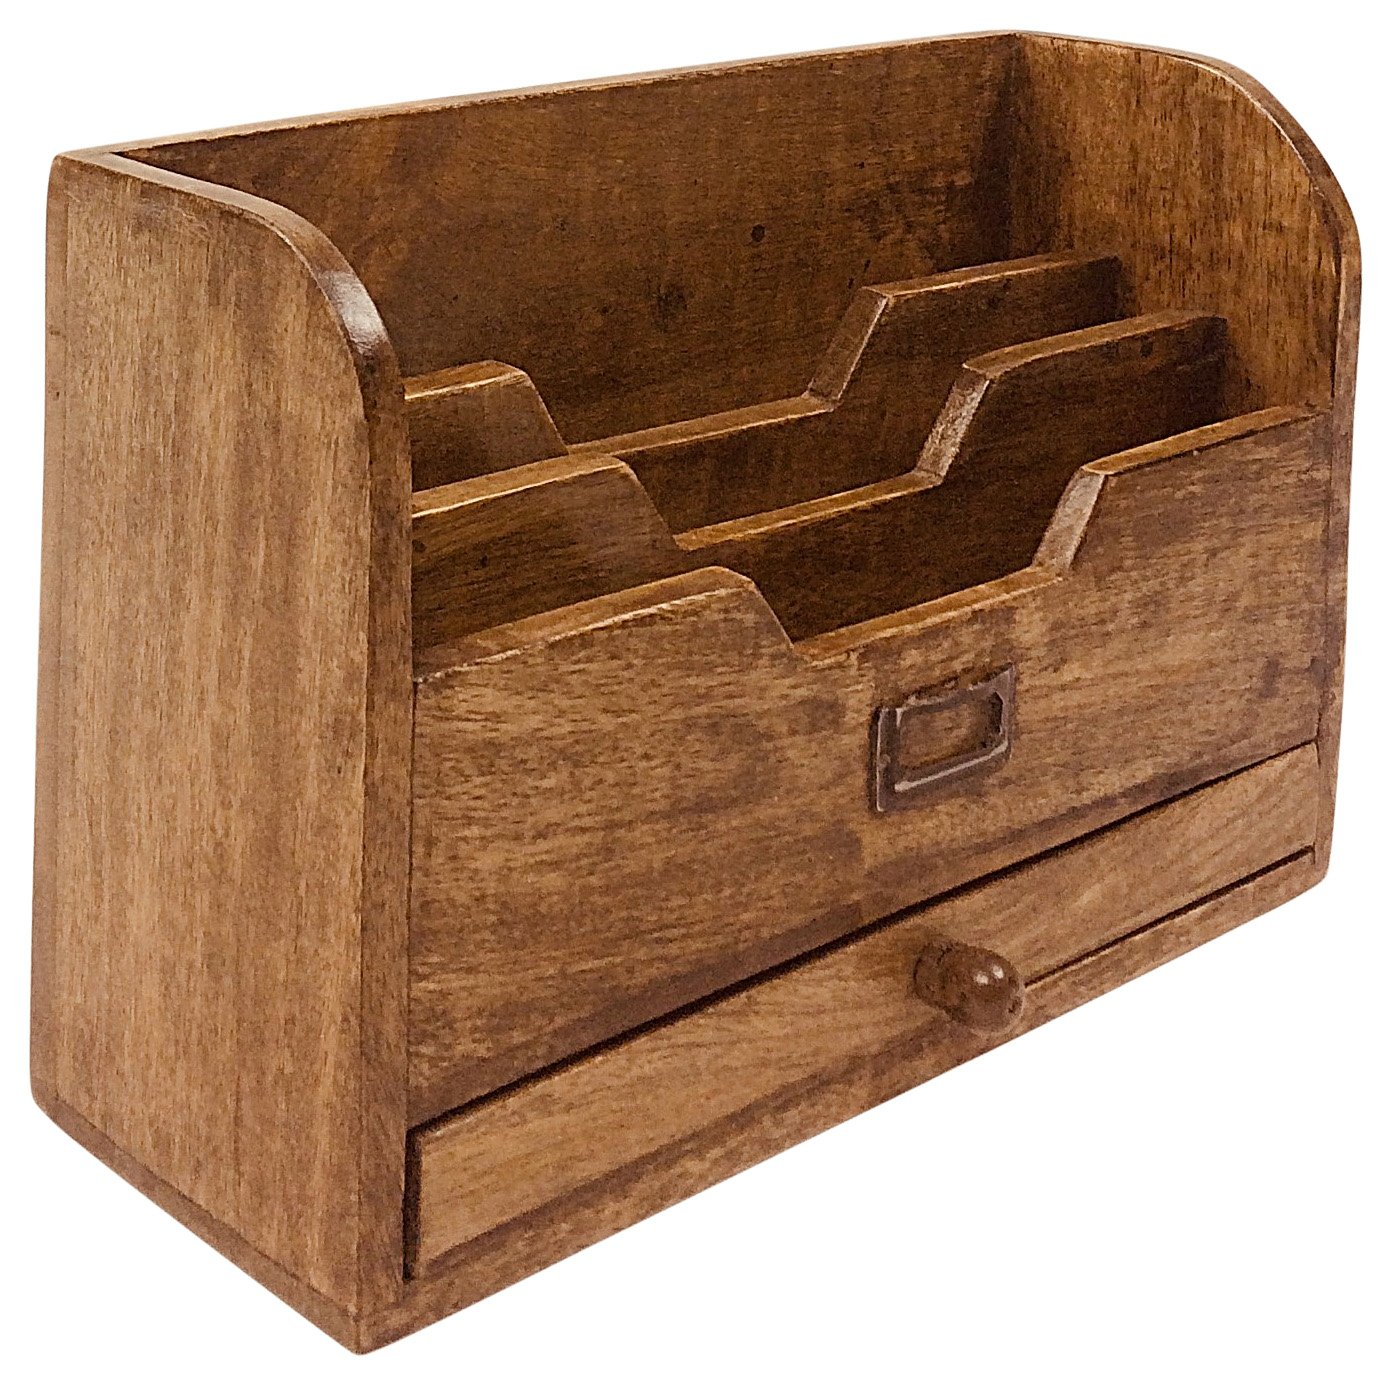 Letter Rack with Drawer - Soap Scent & Home